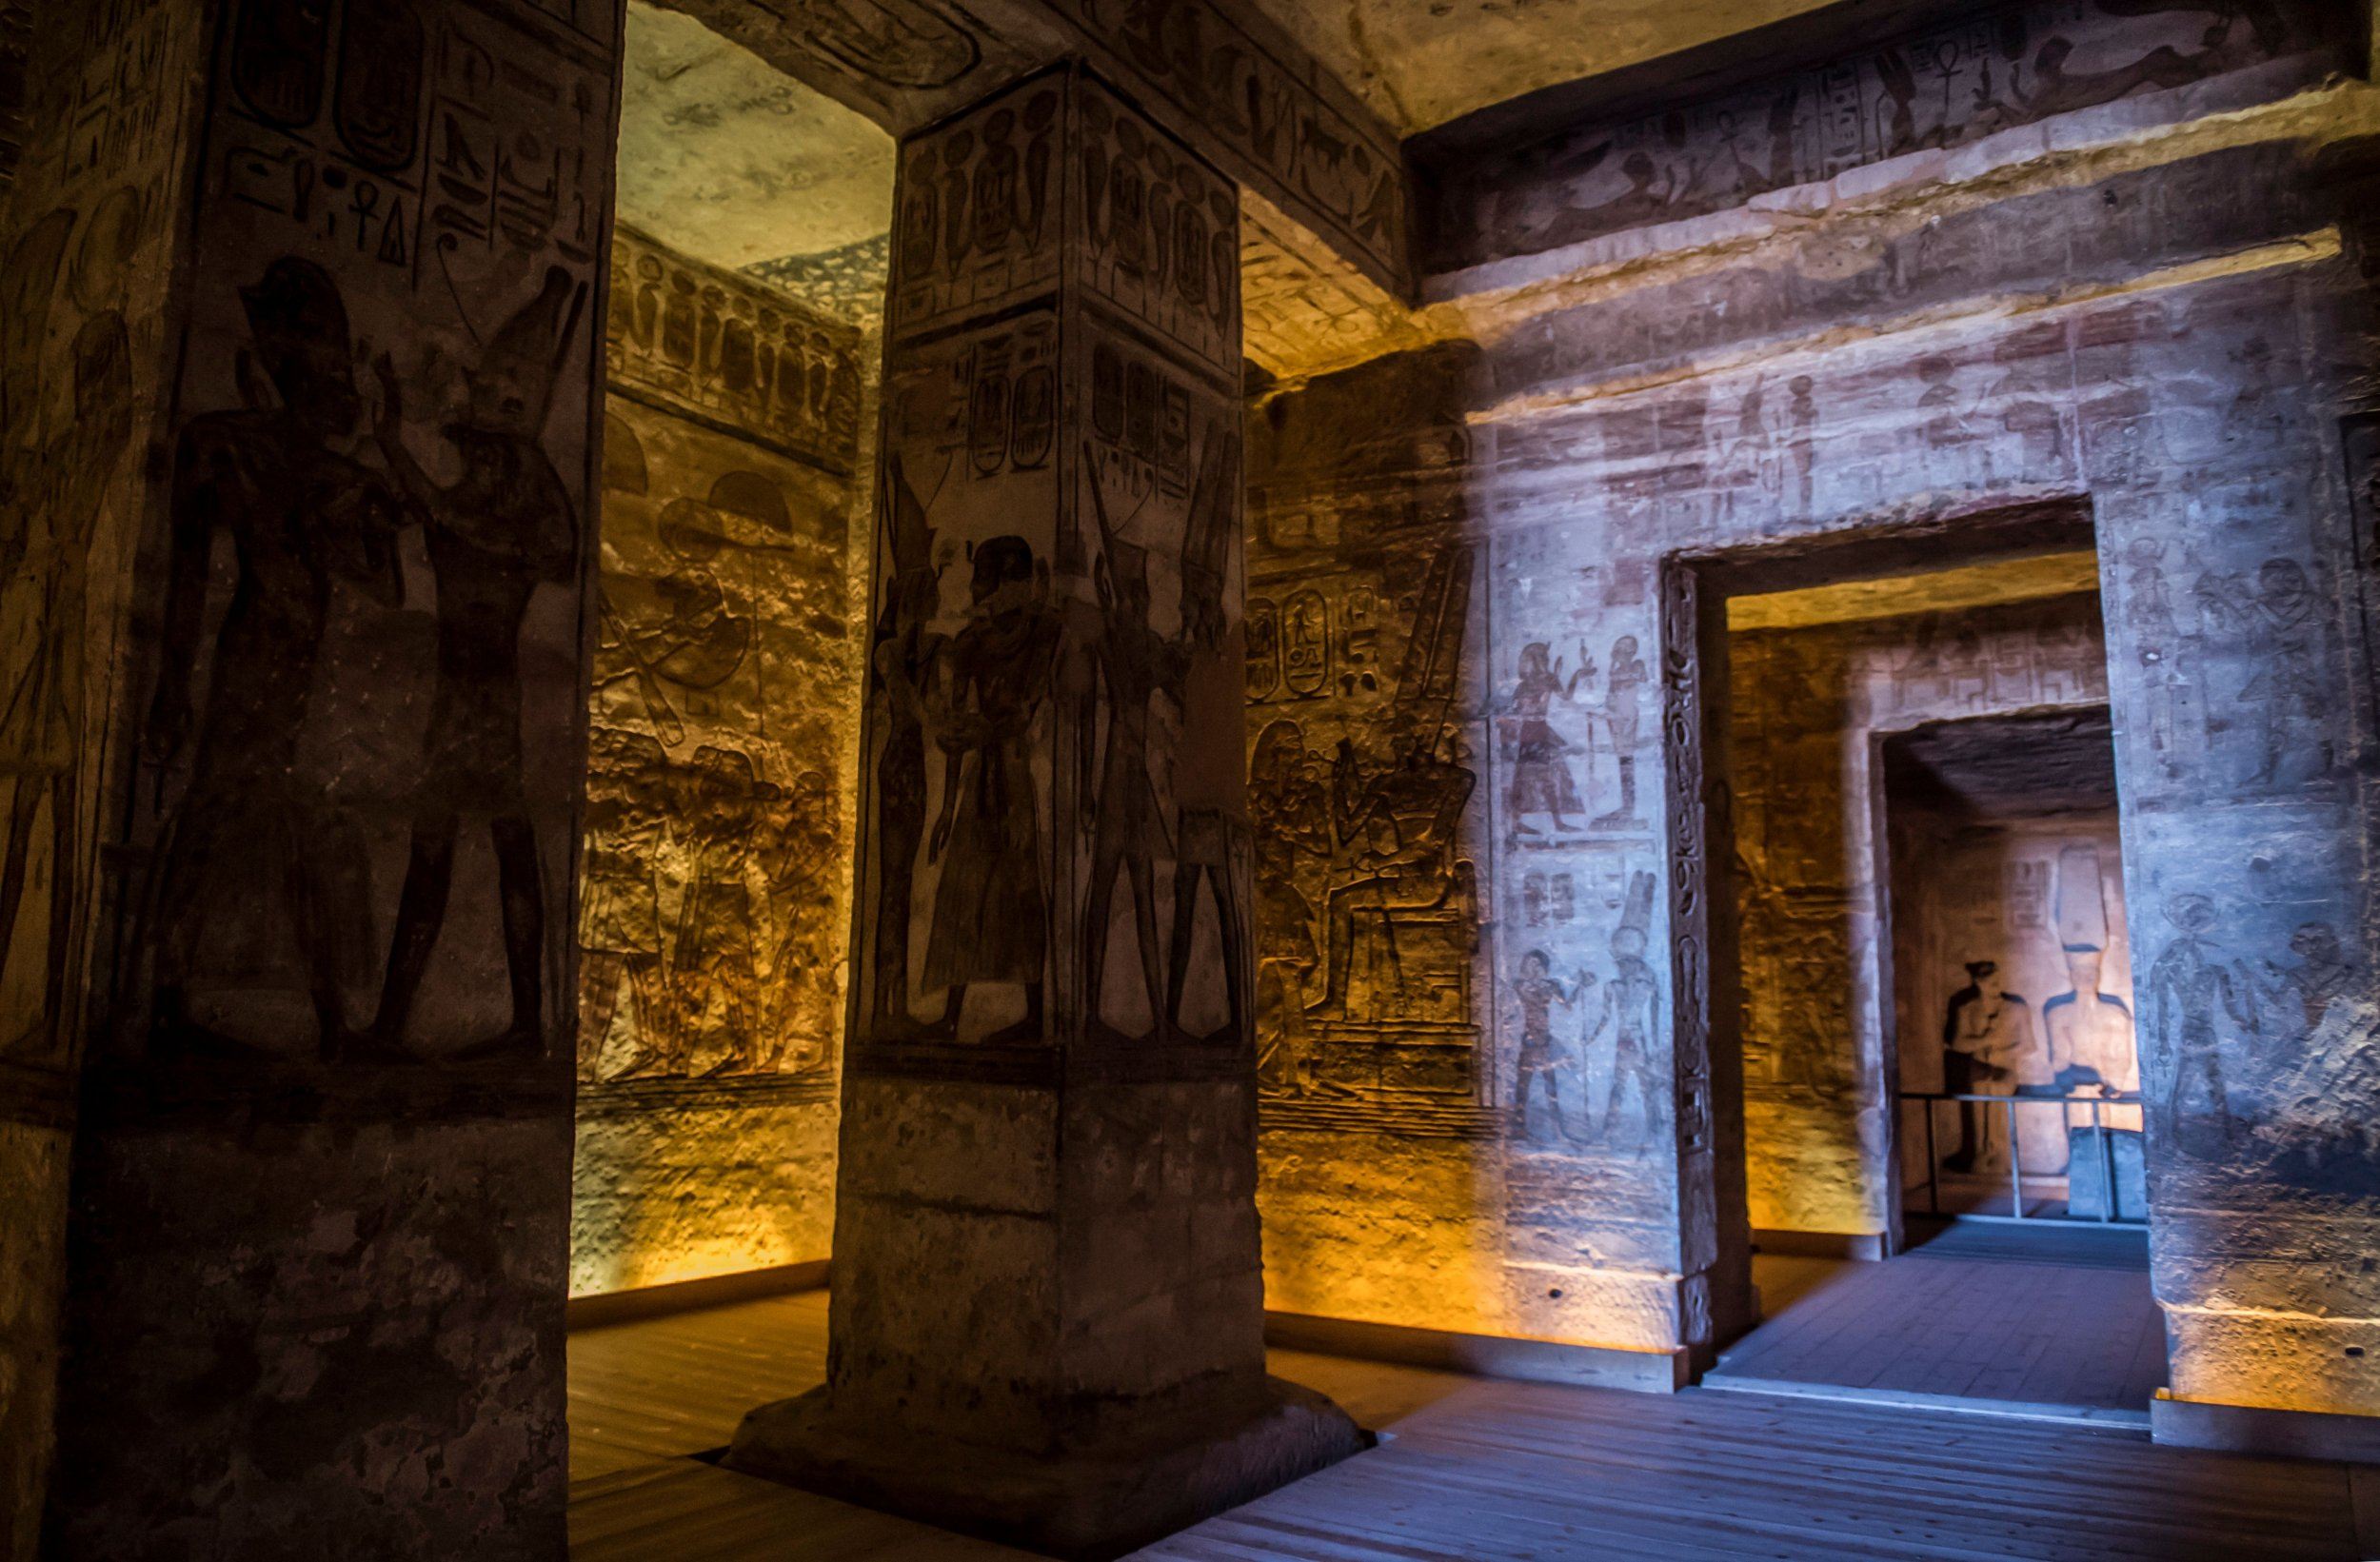 Ancient Egypt Artifacts Depicting Ramses the Great as